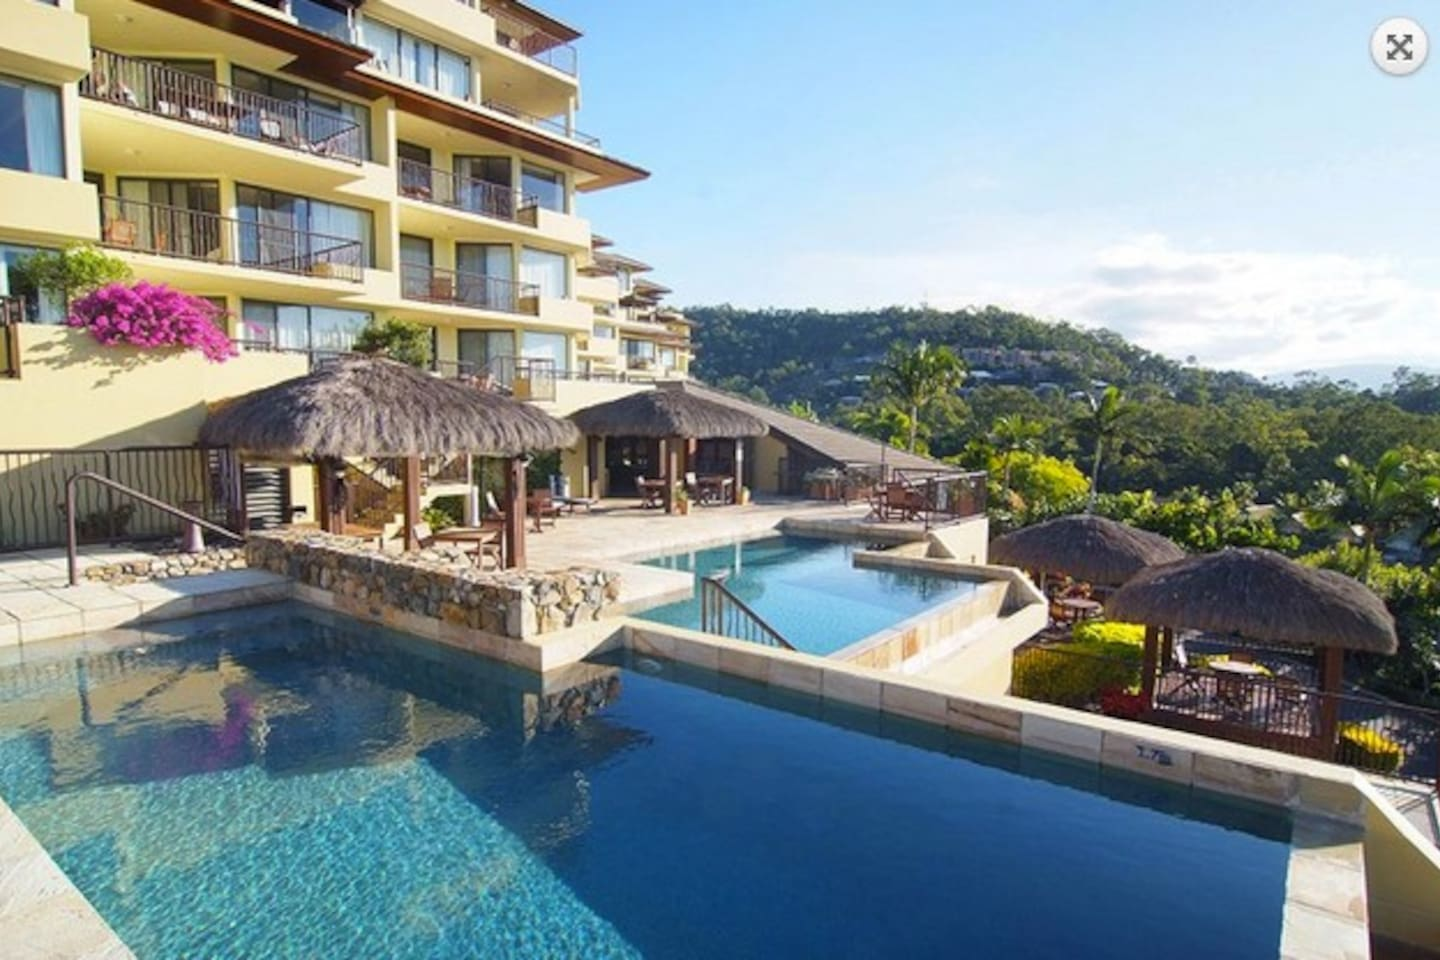 Waters Edge resort. Unit is on the third floor overlooking these pools